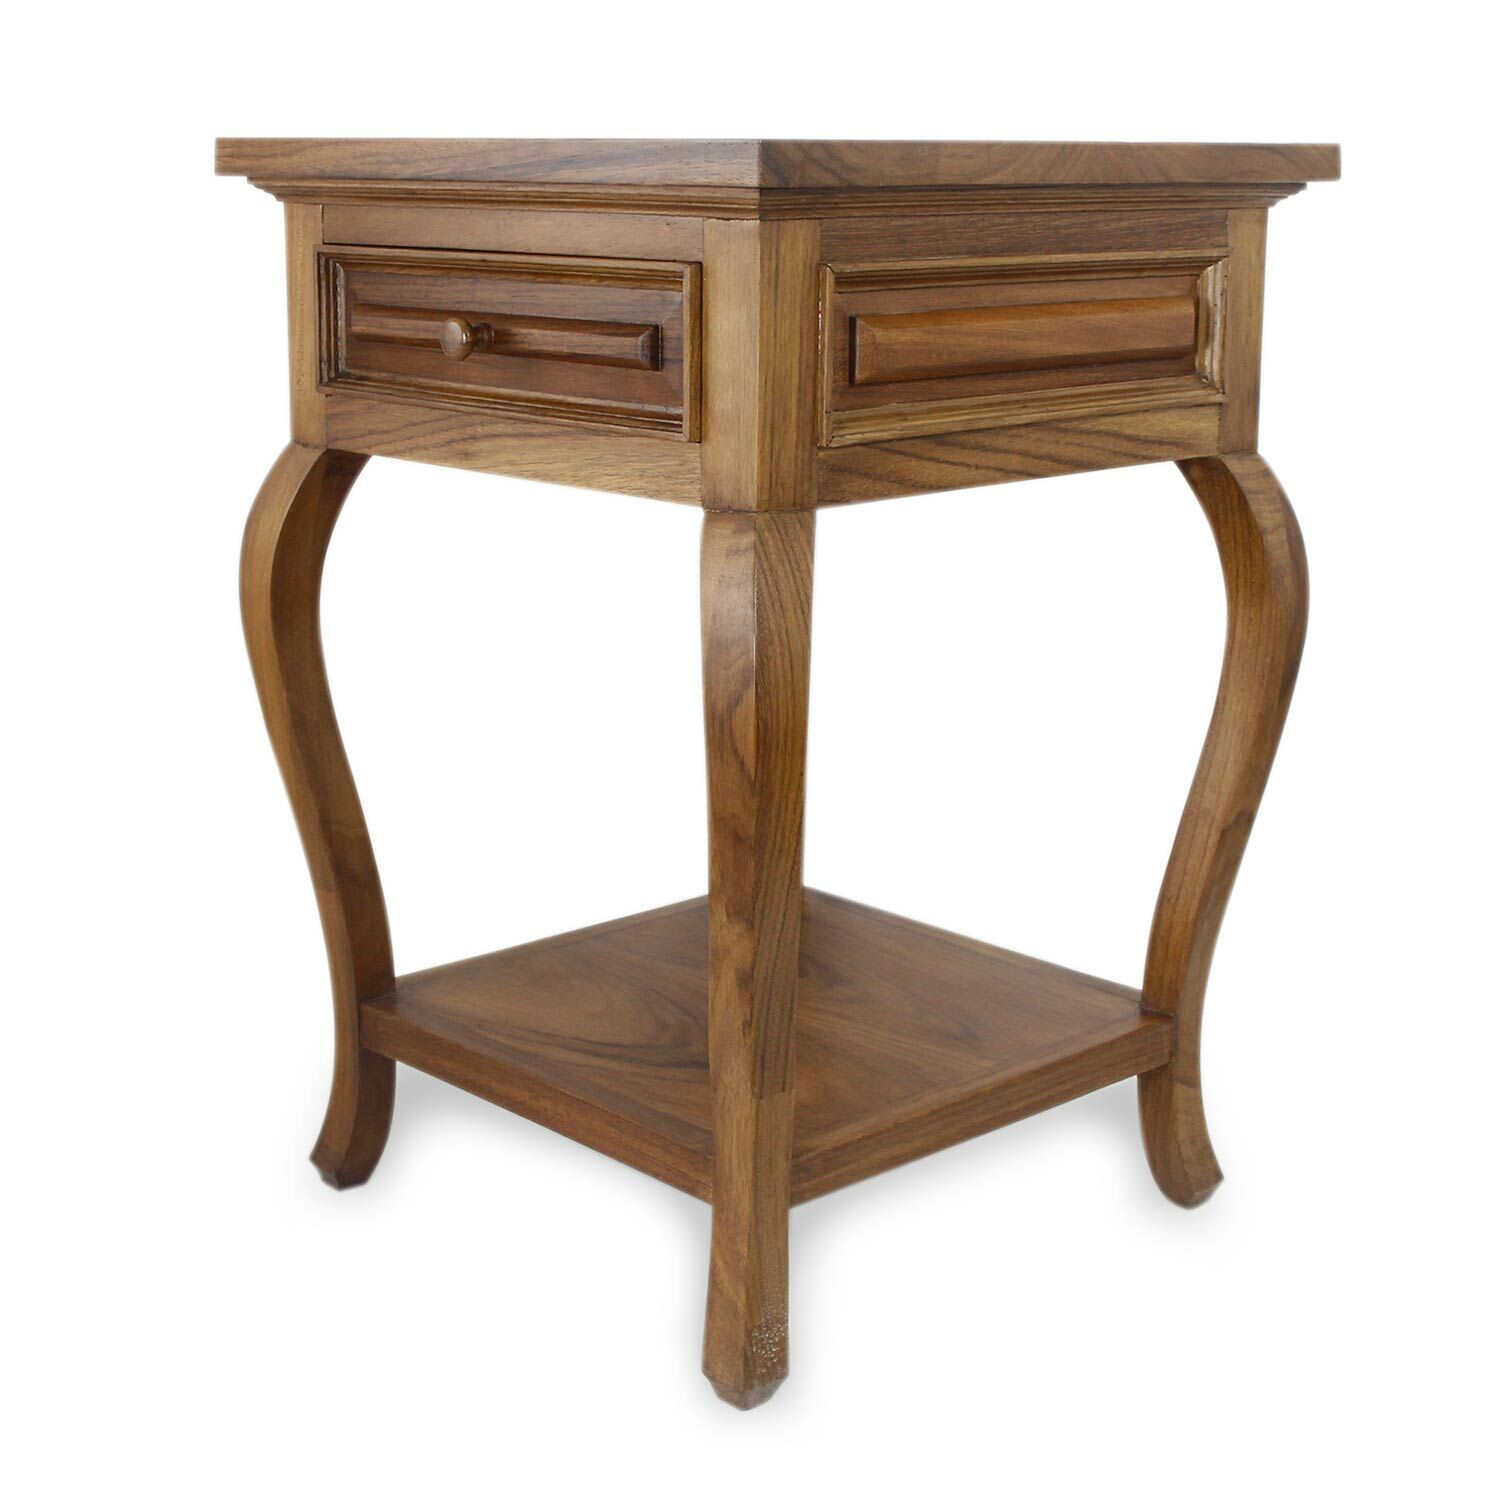 Yoakum Parota Wood End Table with Storage